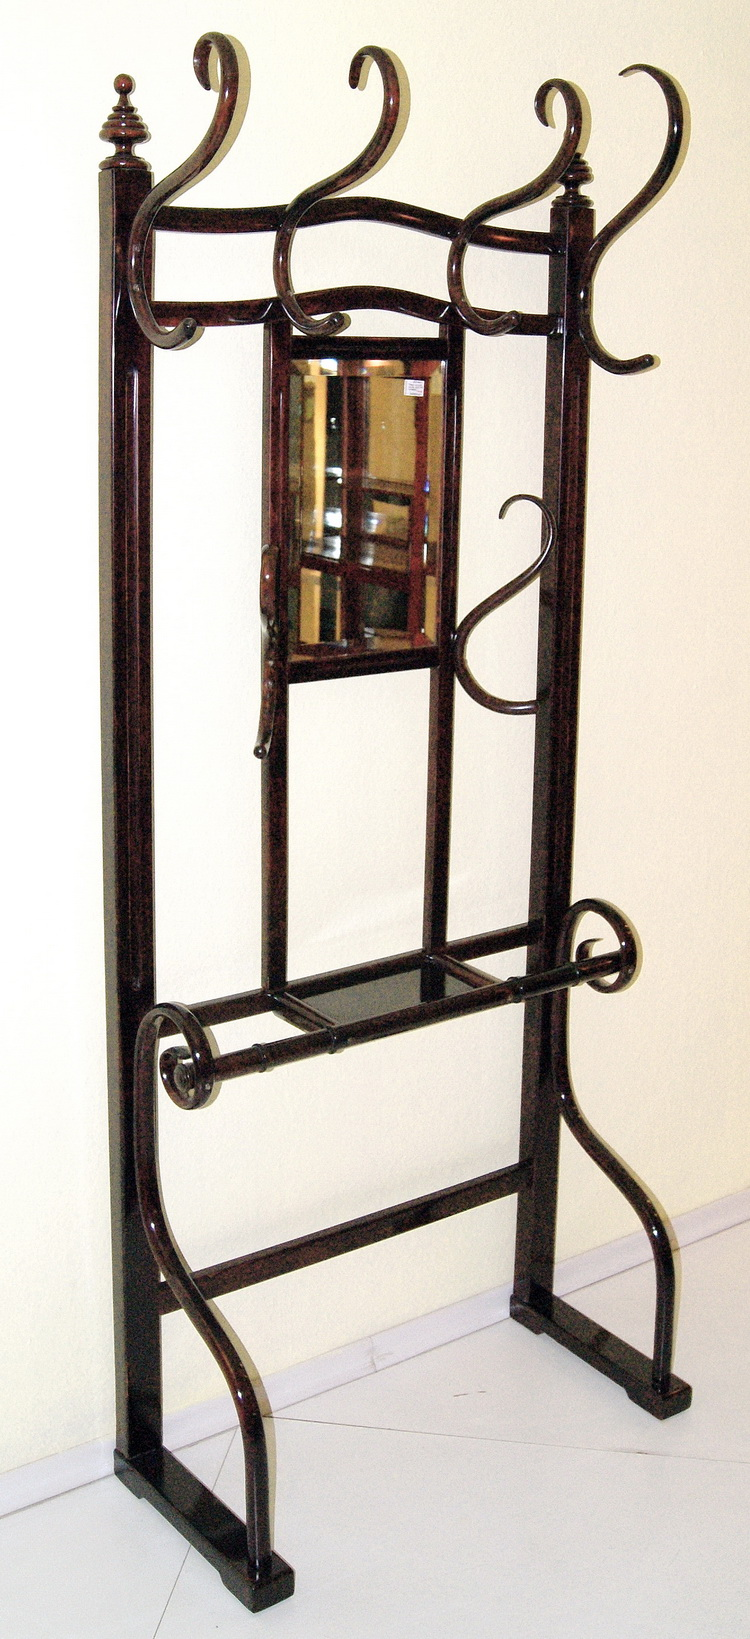 kohn jugendstil wand garderobe thonet art nouveau coat rack mnr 1086 um 1905 ebay. Black Bedroom Furniture Sets. Home Design Ideas